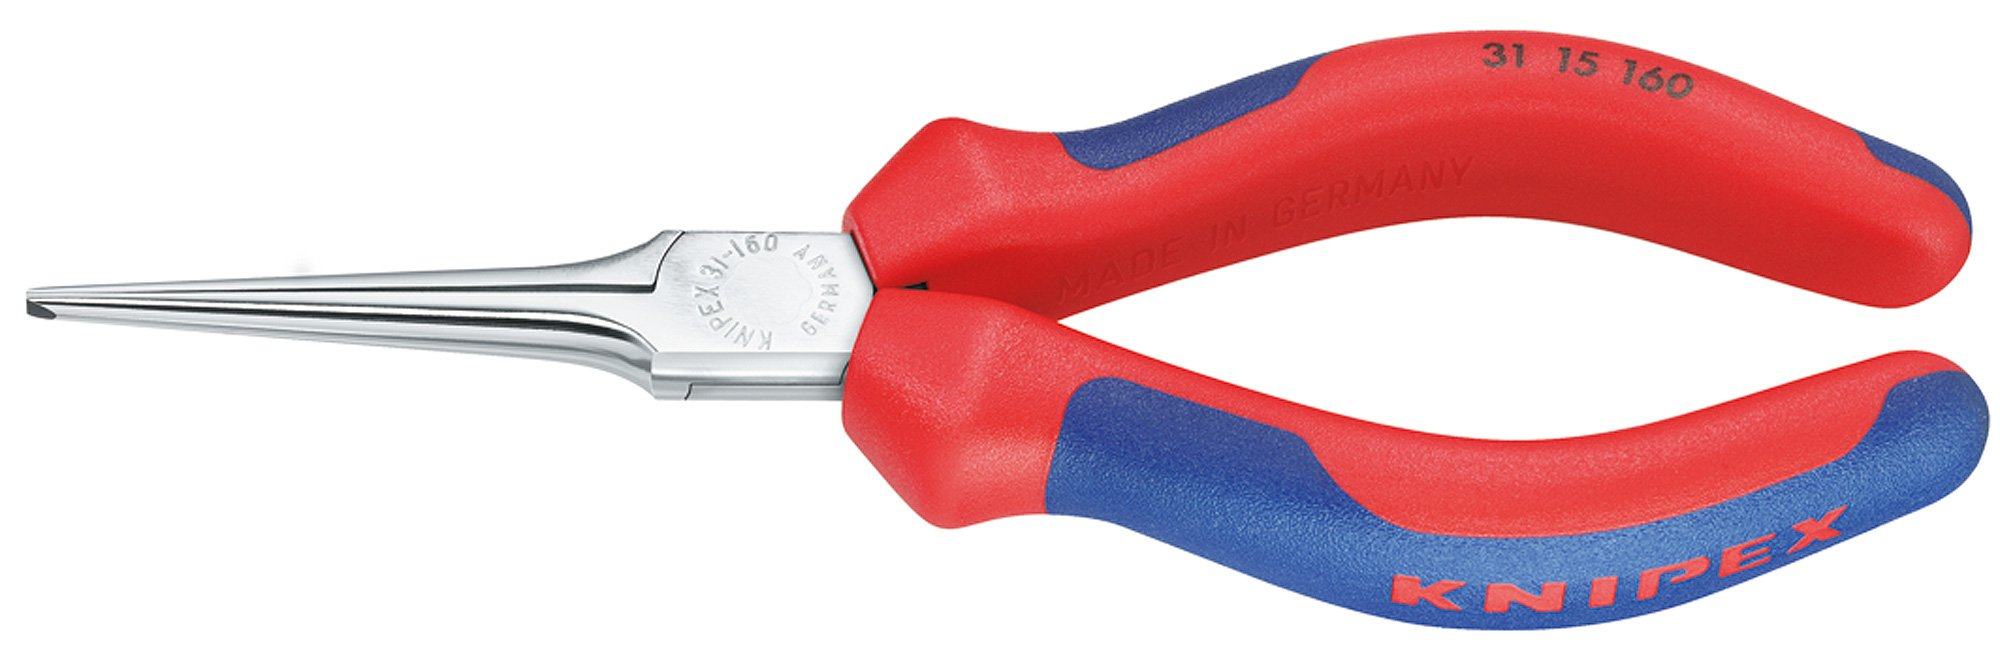 31 15 160 Gripping-/Needle-Nose Pliers 6, 3'' with Soft Handle